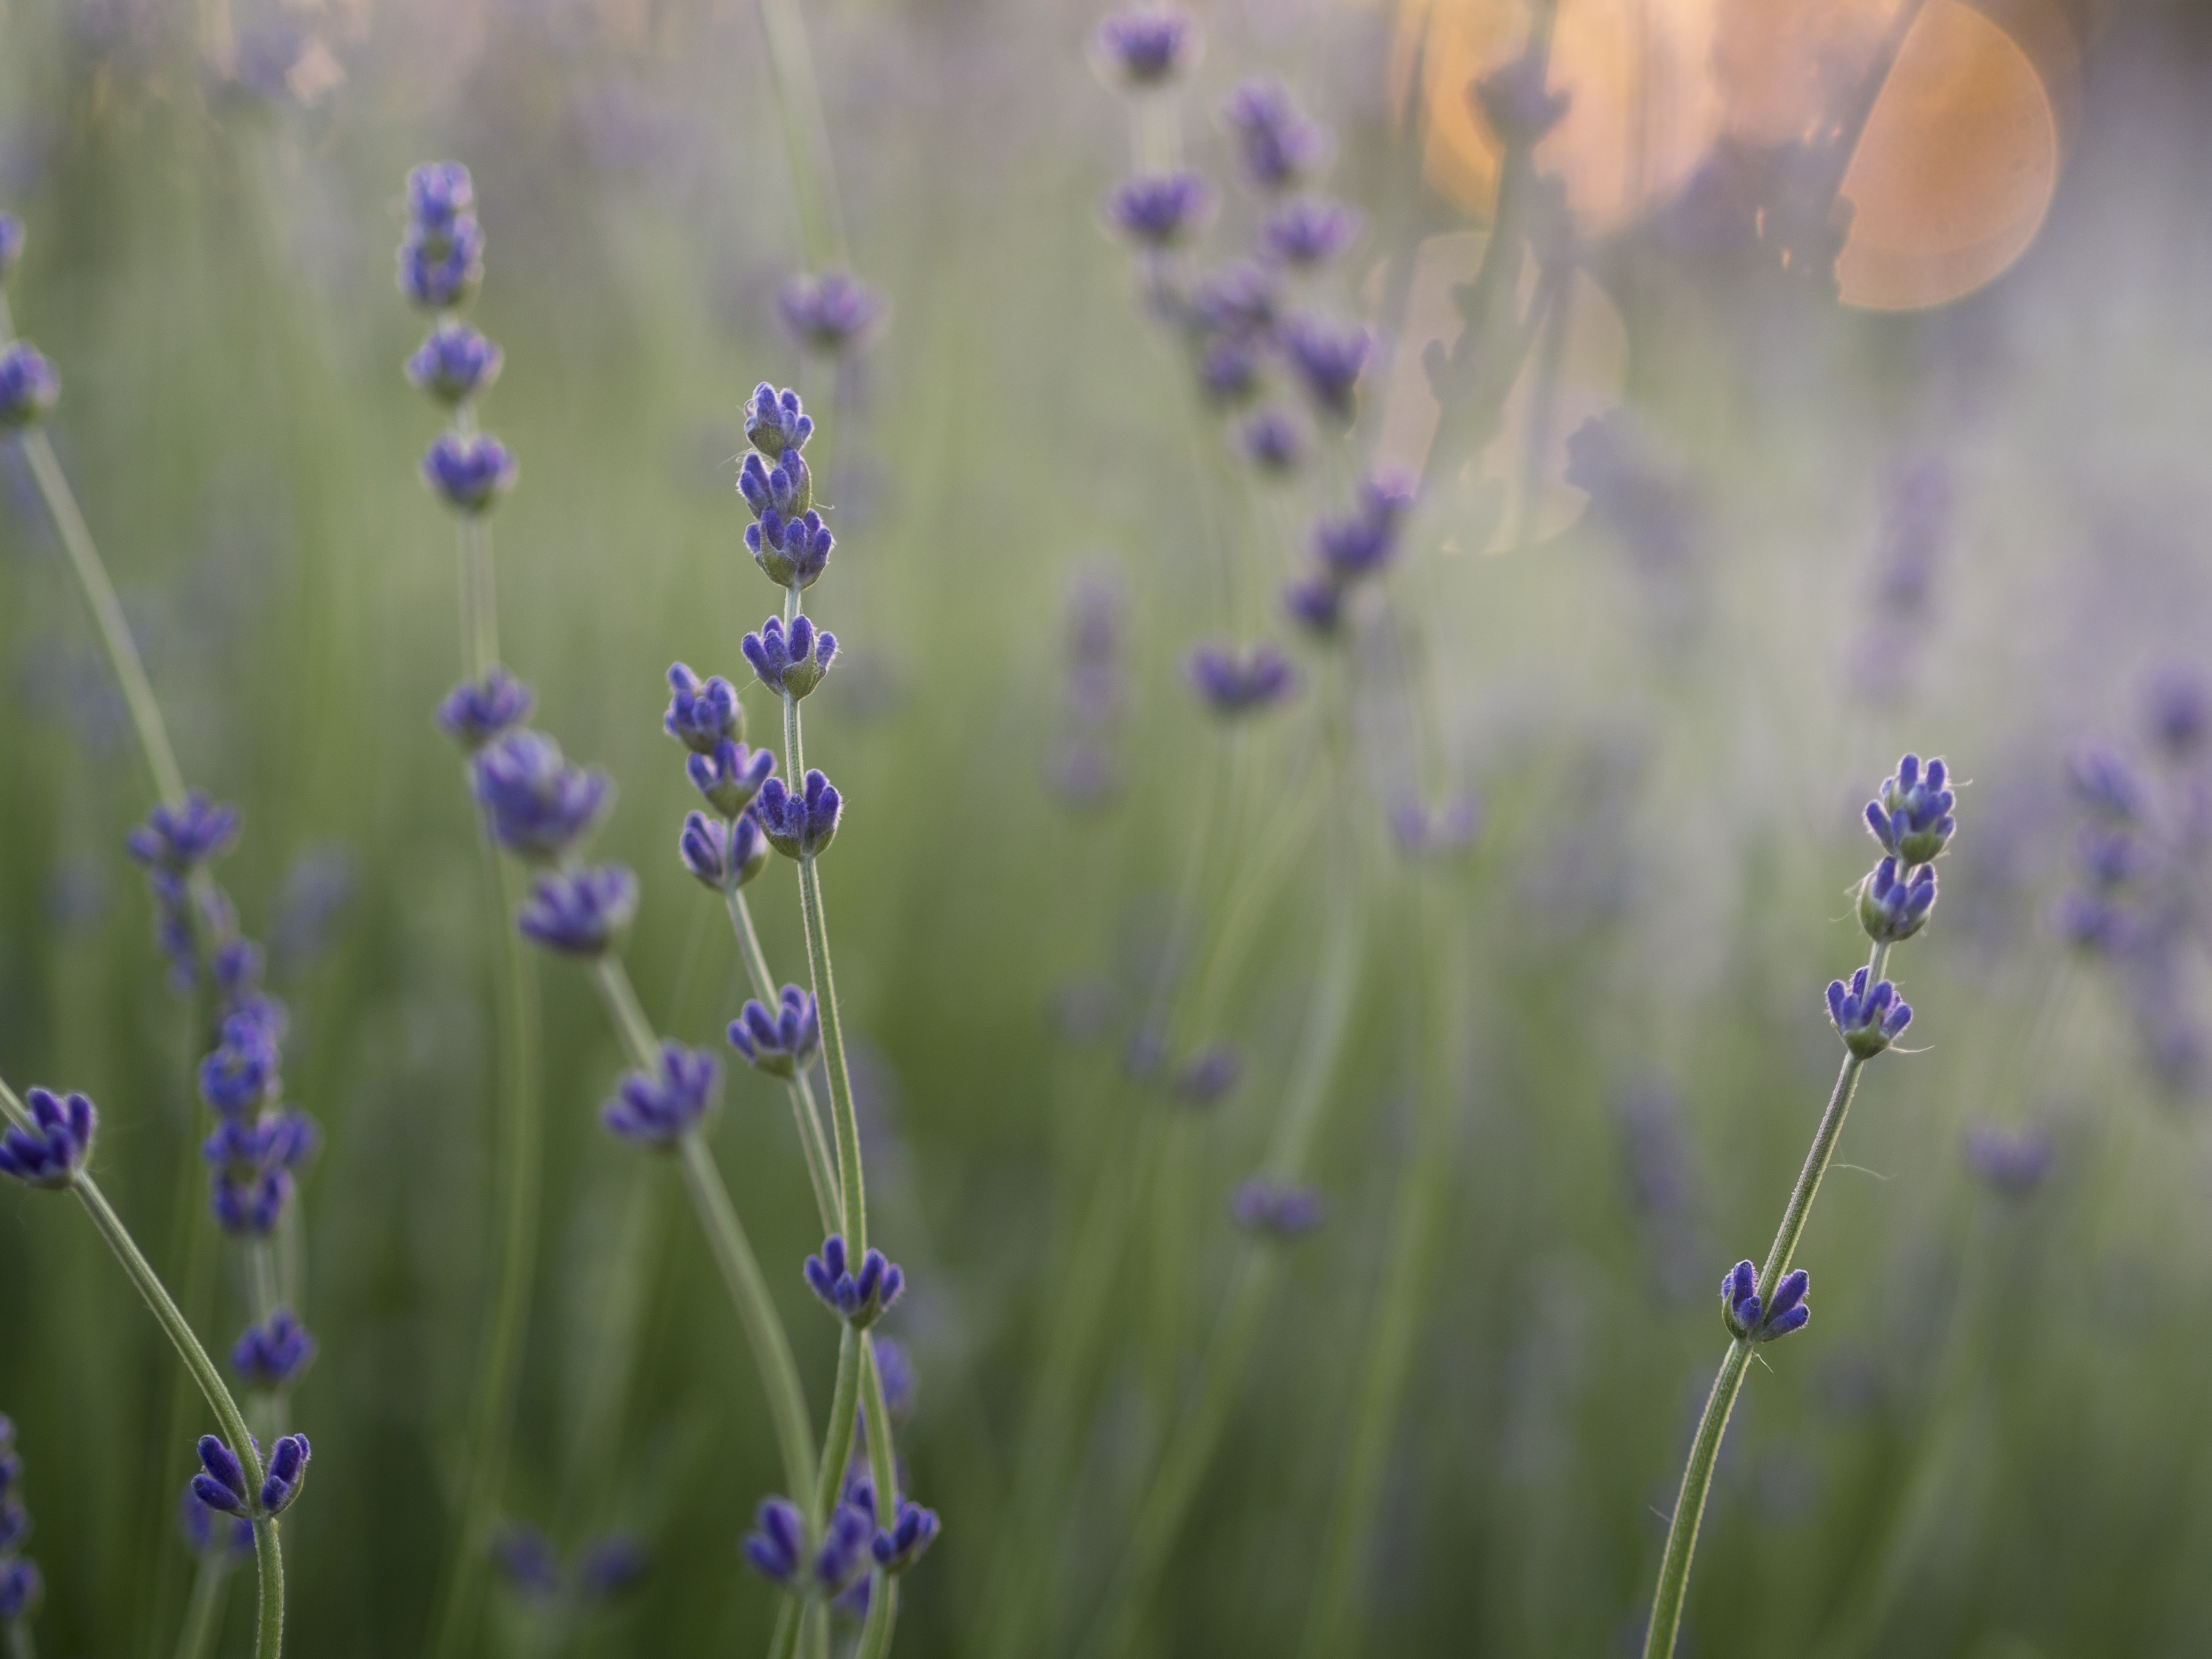 Close-up of lavender plants with bokeh effect in the background